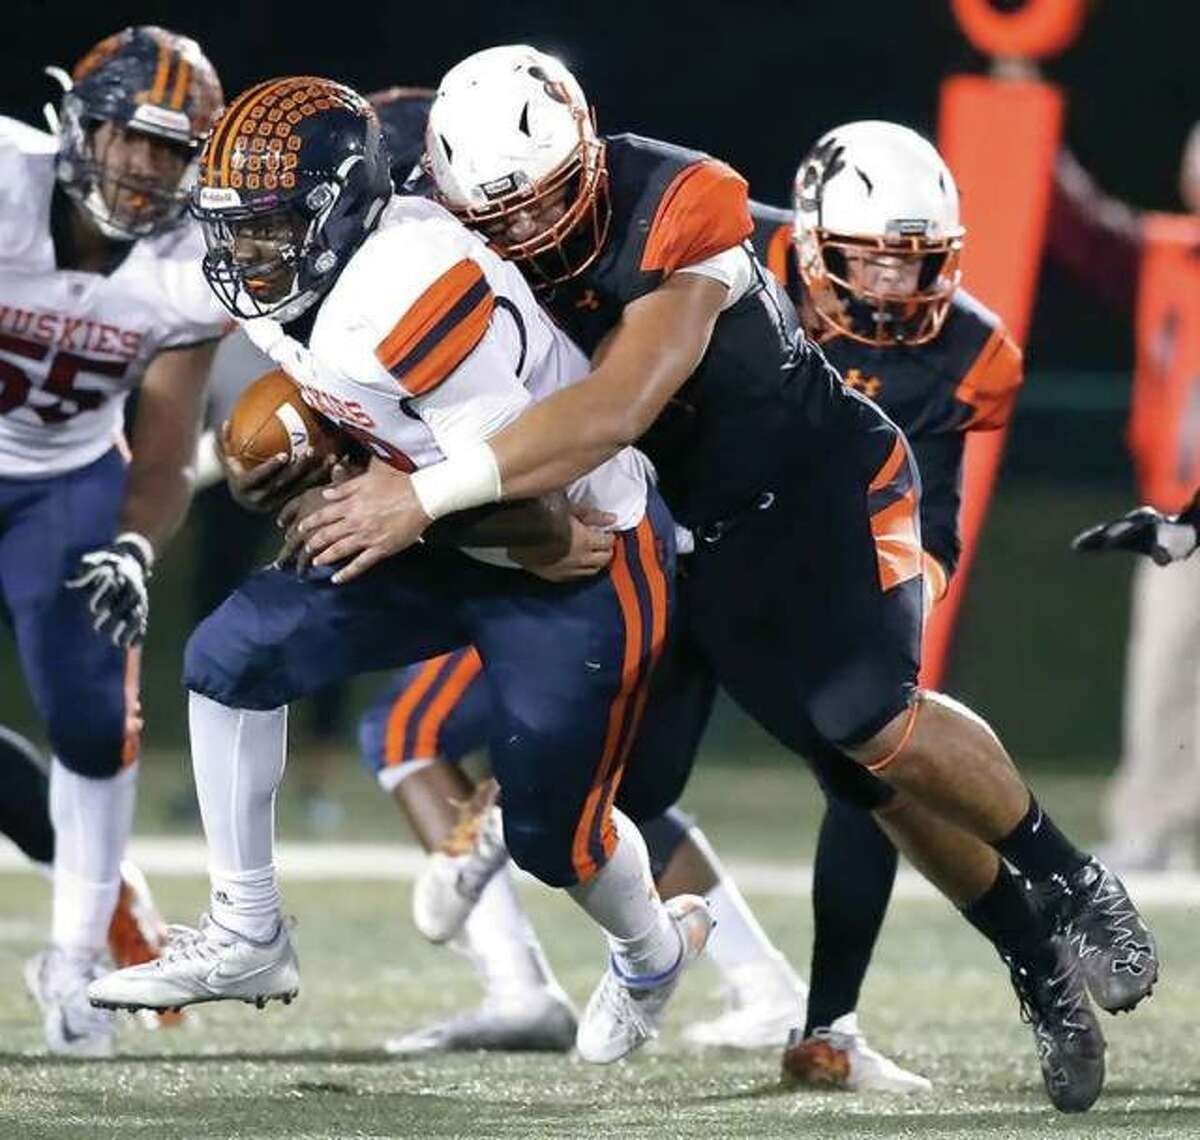 Edwardsville's AJ Epenesa sacks Oak Park-River Forest quarterback Jeremy Hunt during the Tigers' Class 8A first-round playoff victory in Edwardsville.